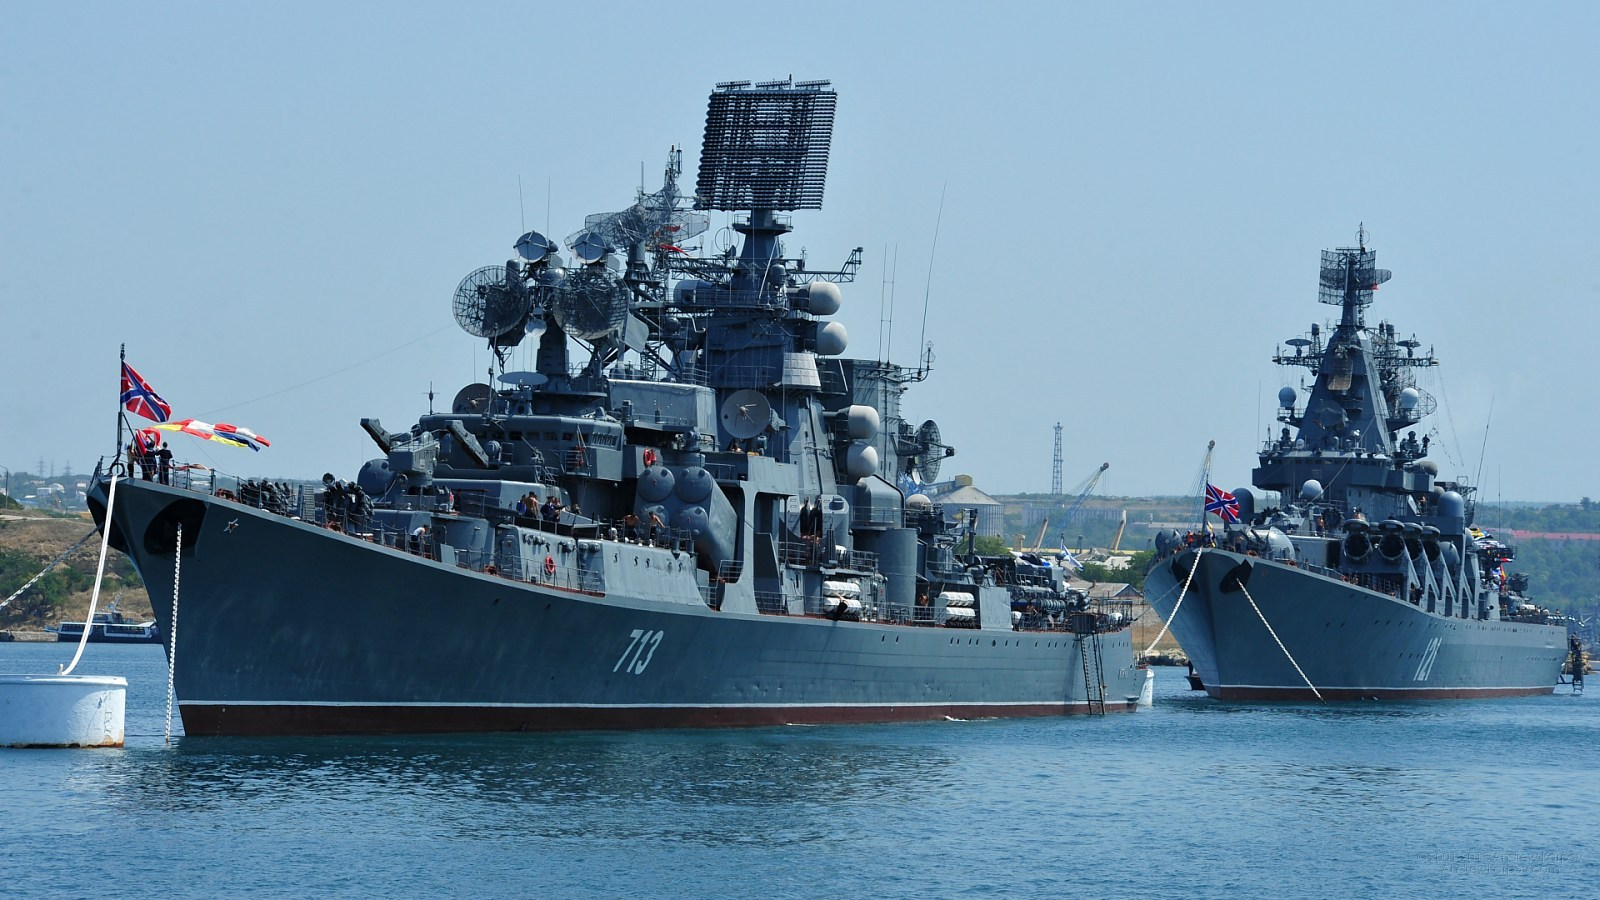 Admiral Ihor Voronchenko: Russia forces Ukraine to give up at sea | People's project